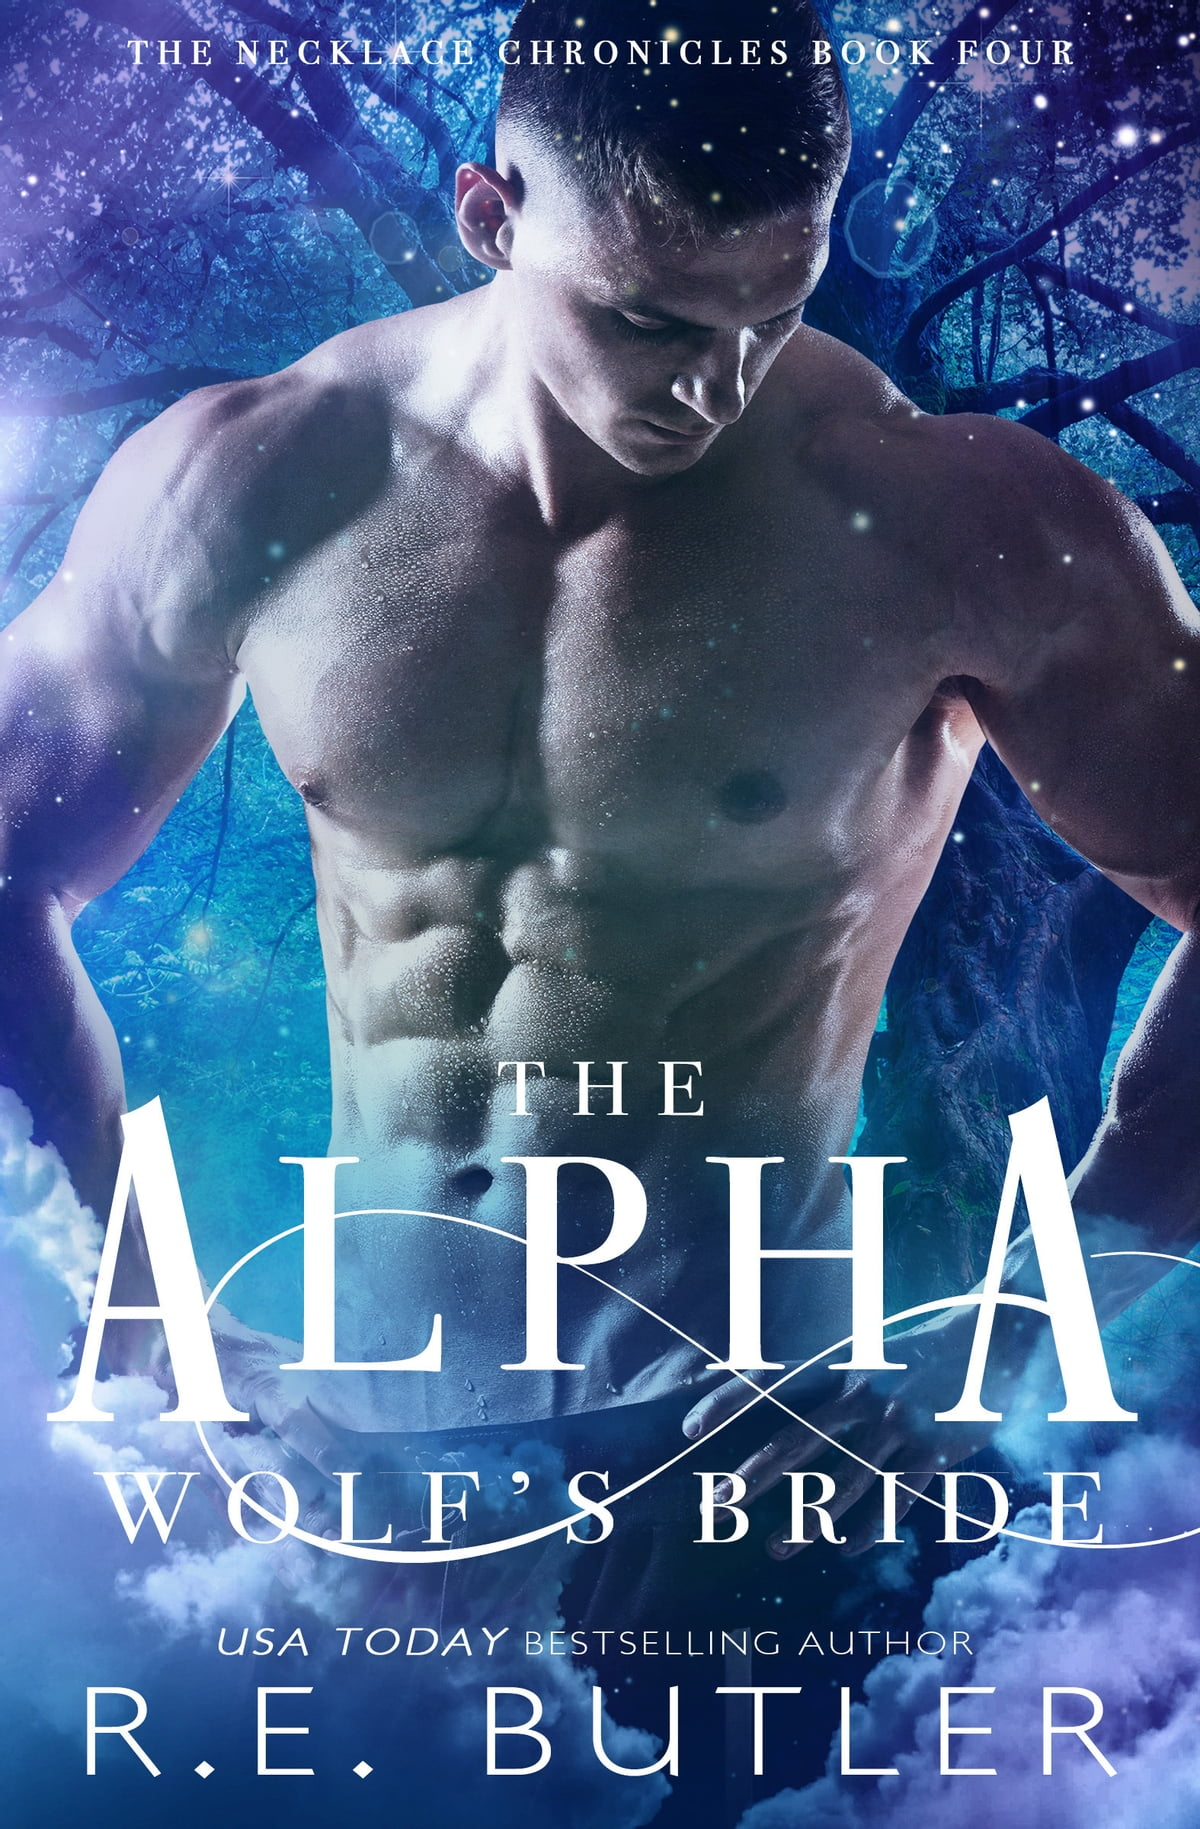 Alpha Blue Movie the alpha wolf's bride (the necklace chronicles book four) ebookr.e.  butler - rakuten kobo